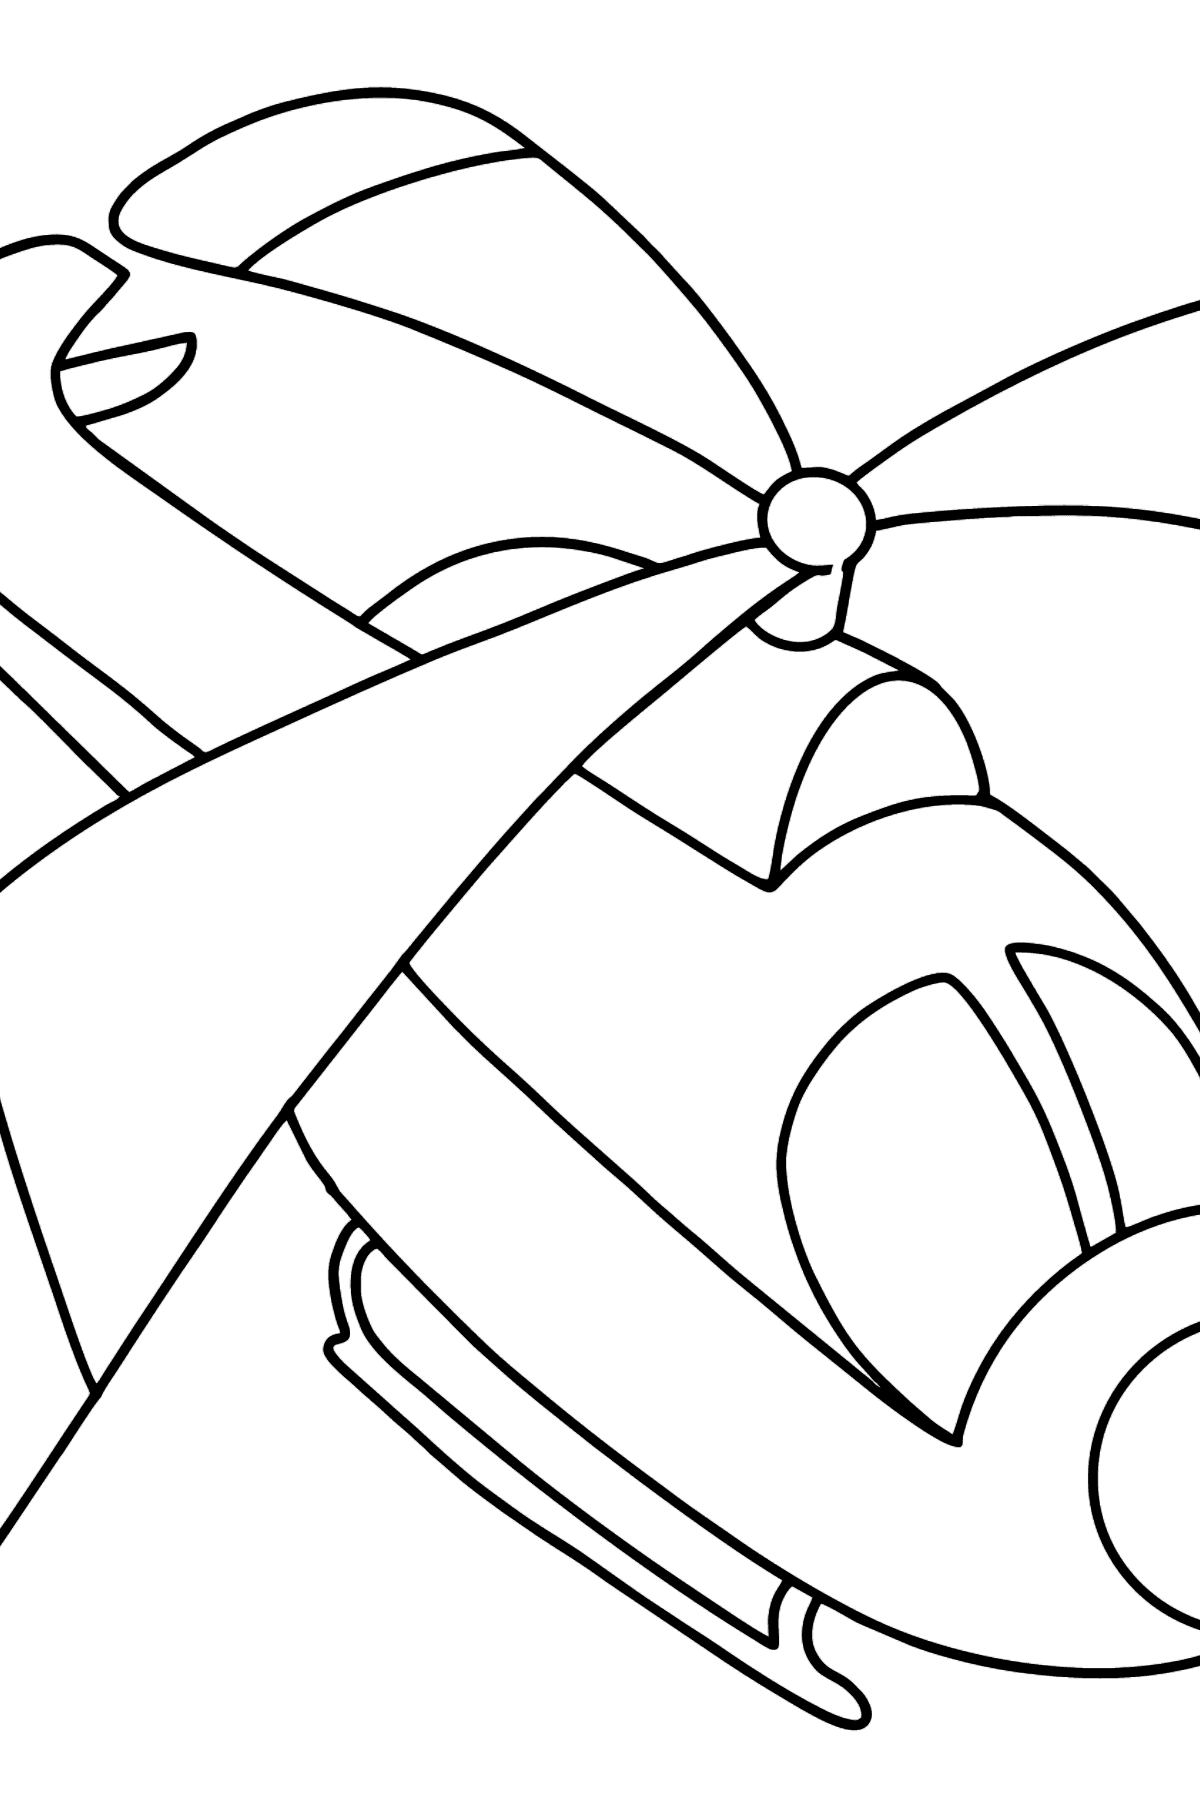 Little Helicopter coloring page - Coloring Pages for Kids